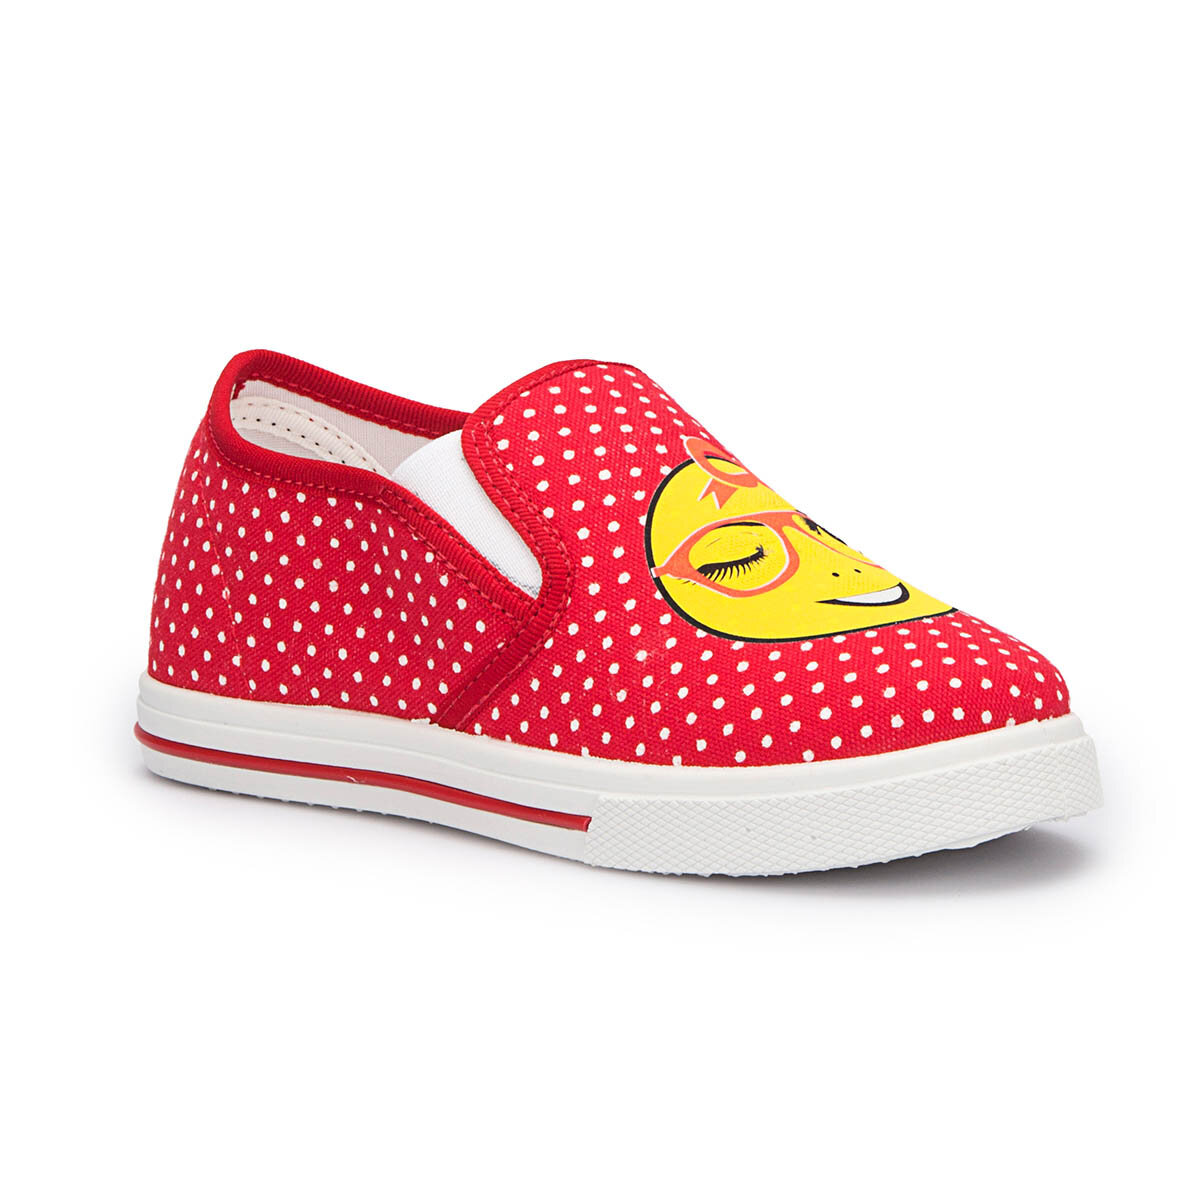 FLO PINKY-1 Red Female Child Slip On Shoes PINKSTEP